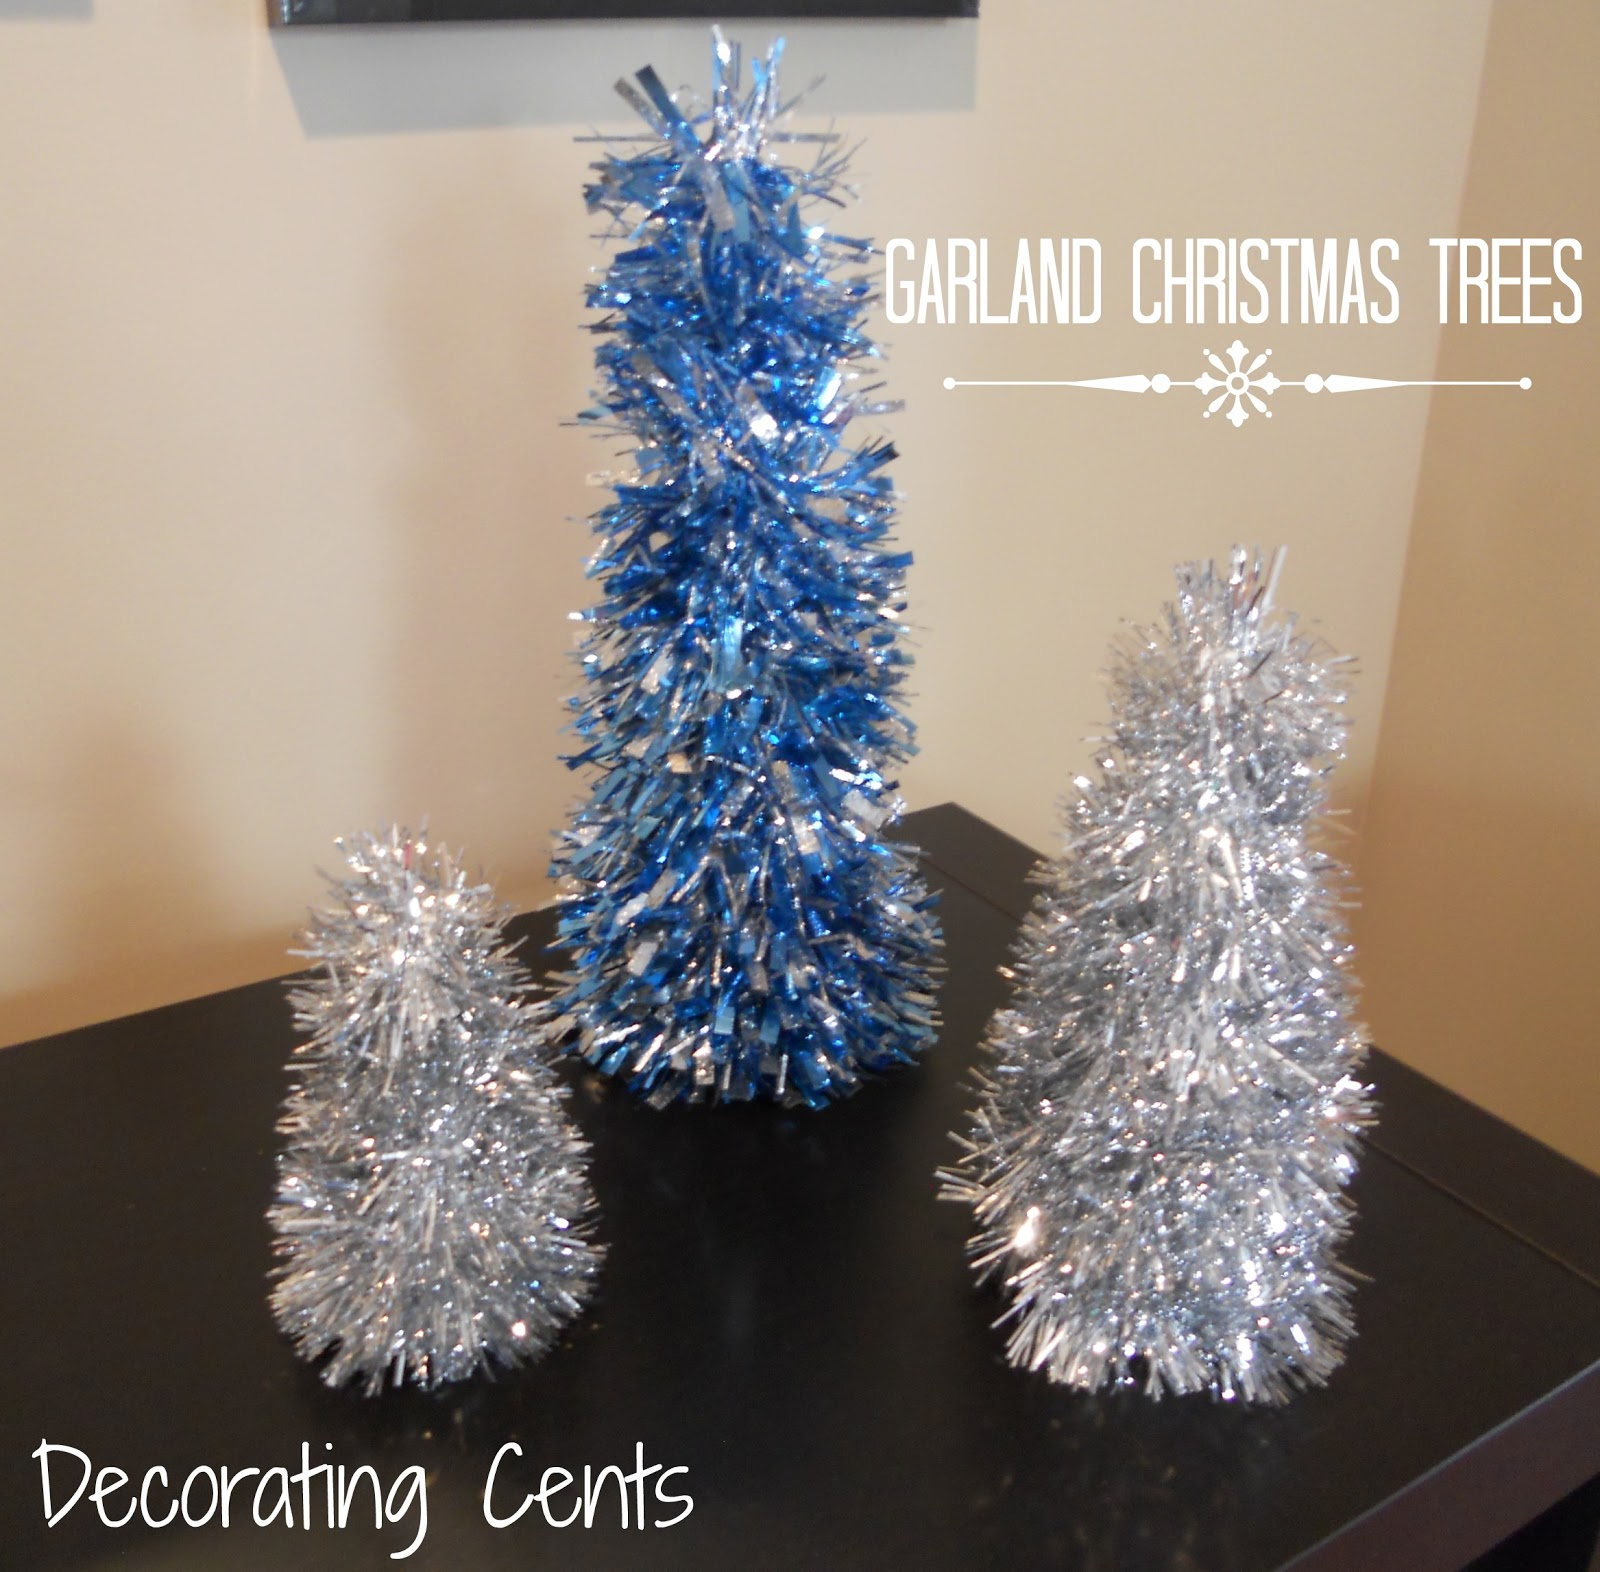 Decorating cents garland christmas trees Garland tree decoration